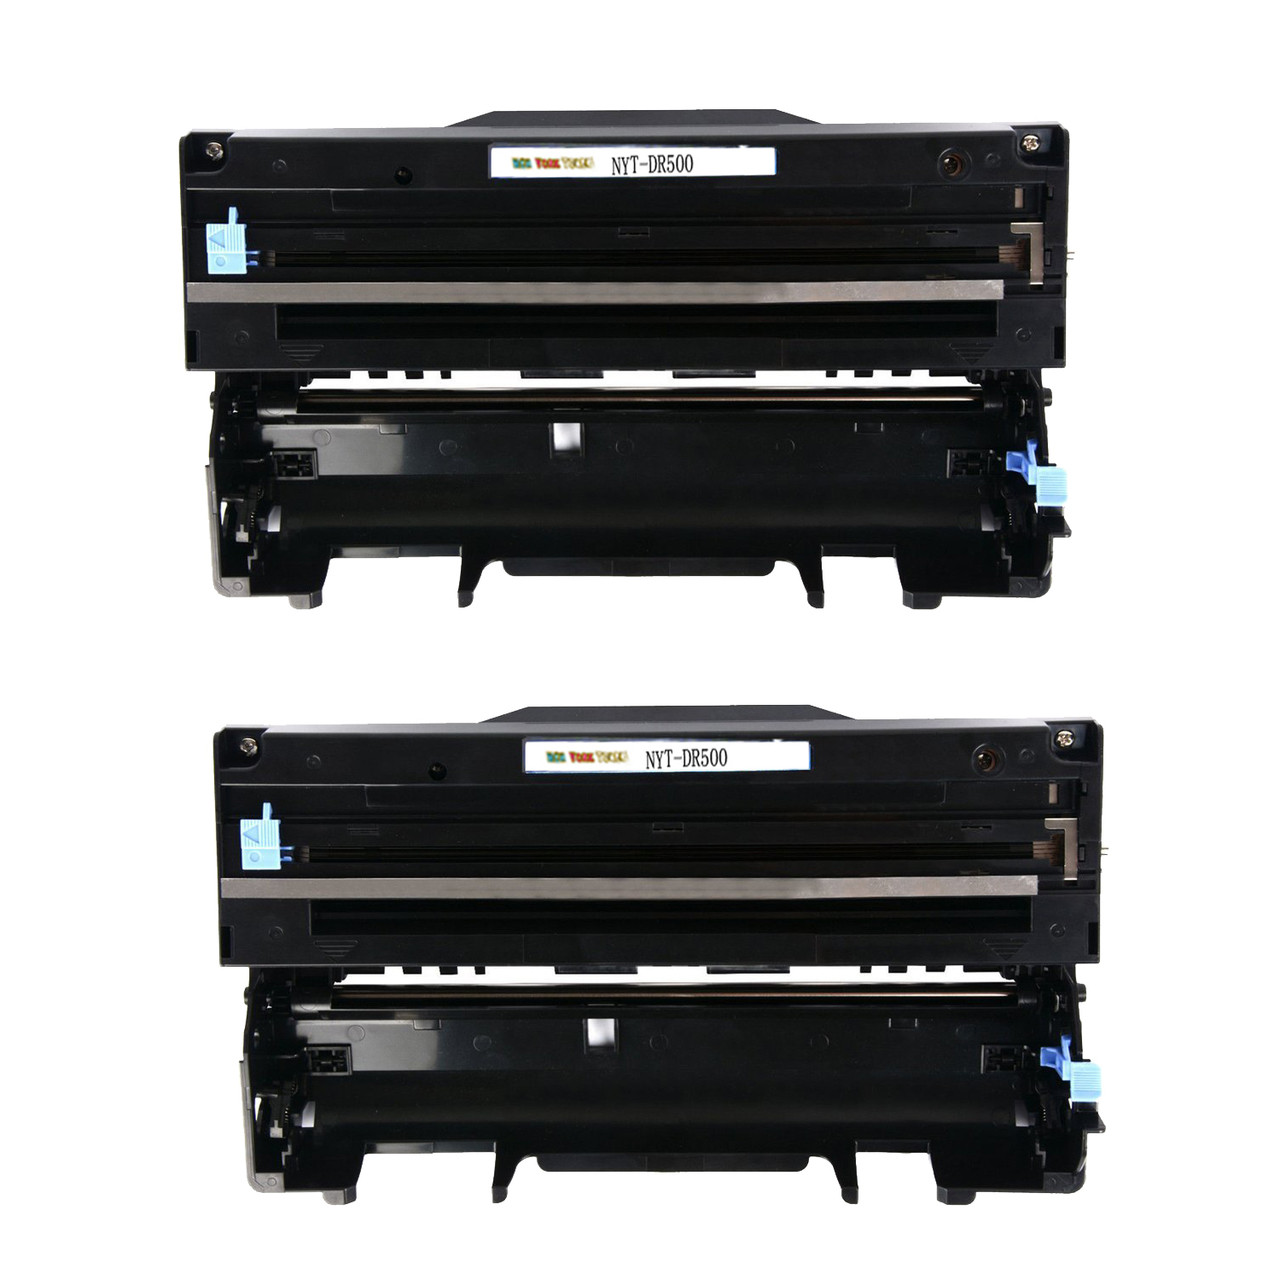 Brother HL-1670N Printer Drivers for Windows XP